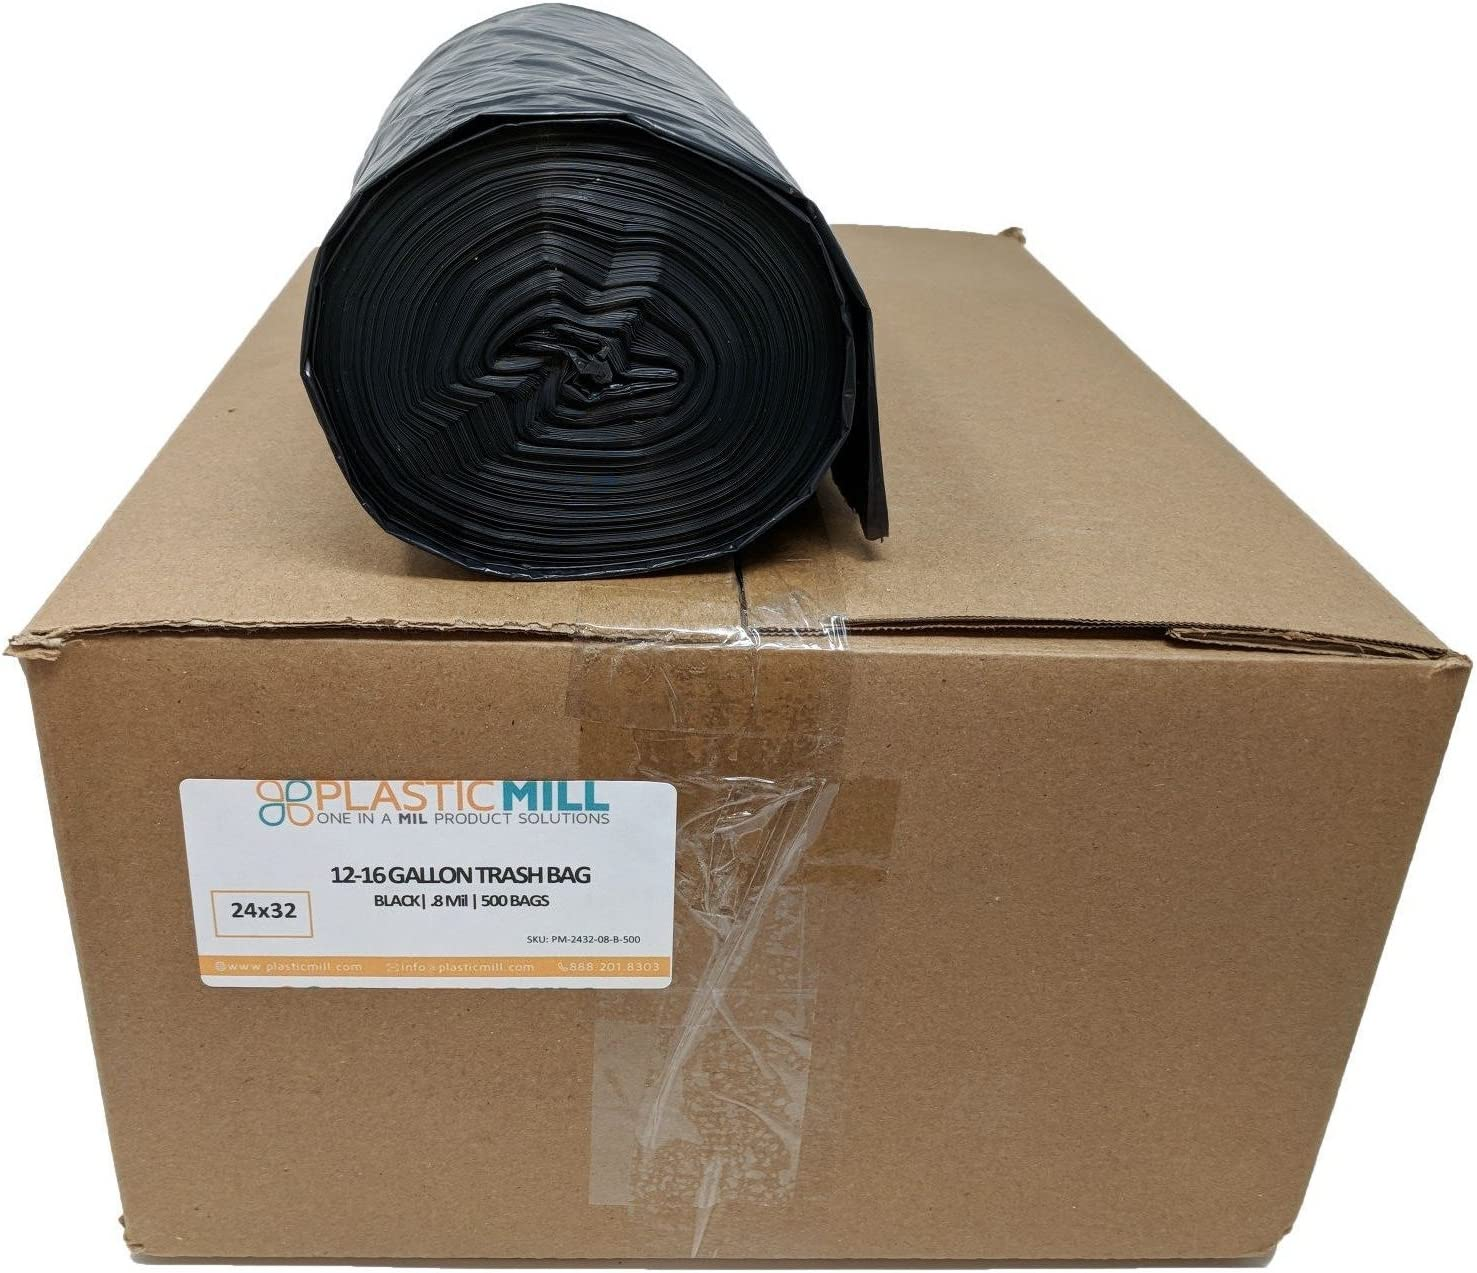 PlasticMill 12-16 Gallon Garbage Bags: Black, .8 Mil, 24x32, 500 Bags.